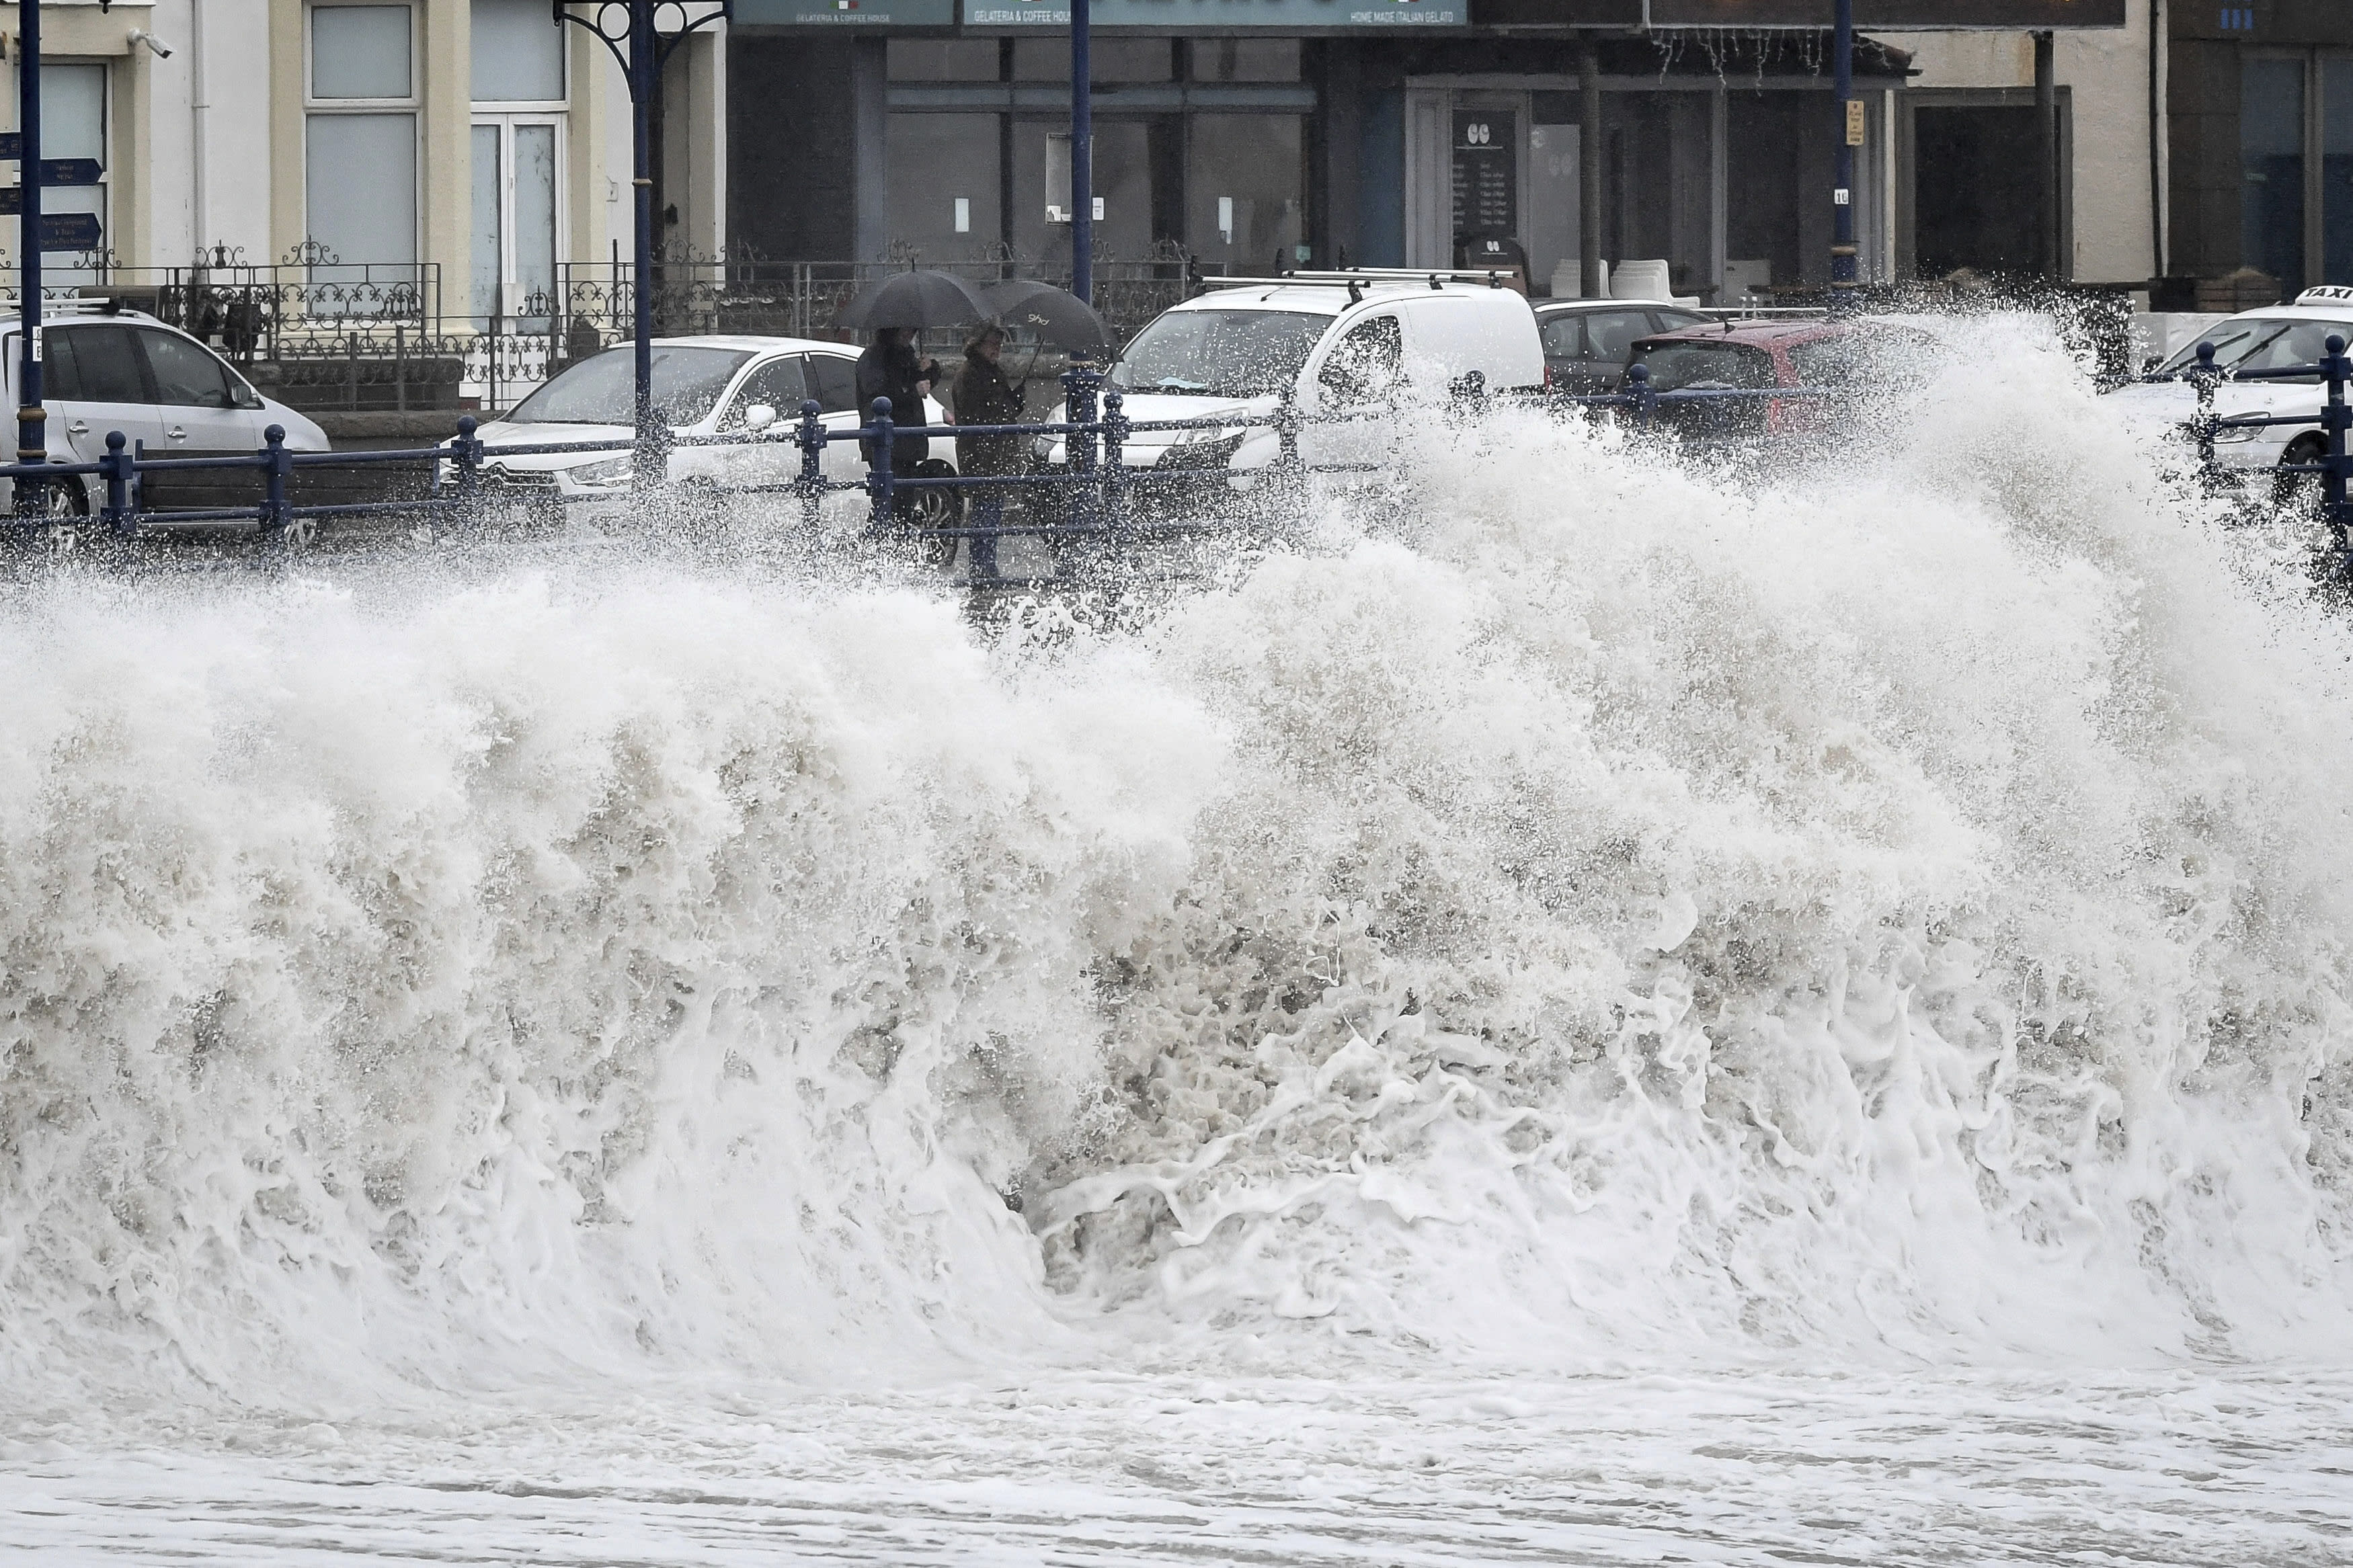 Storm Dennis to bring high winds, heavy rain and flooding to UK